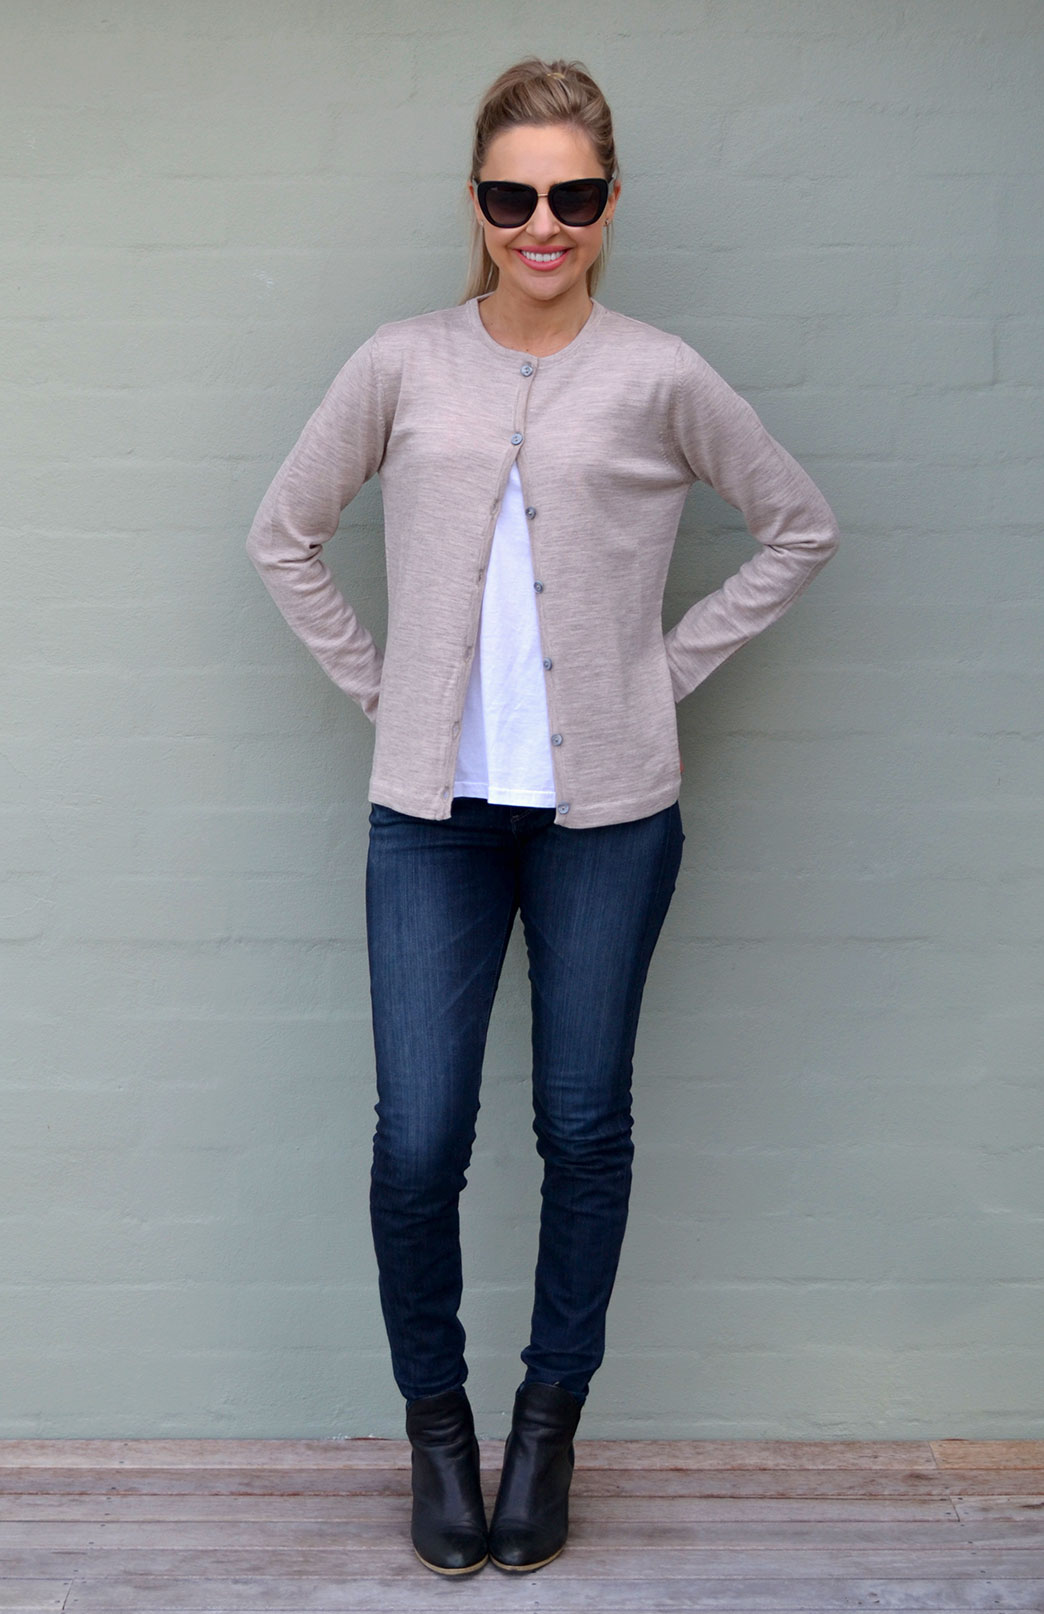 Crew Button Cardigan - Women's Knitted Merino Wool Classic Crew Neck Long Sleeve Button Cardigan - Smitten Merino Tasmania Australia